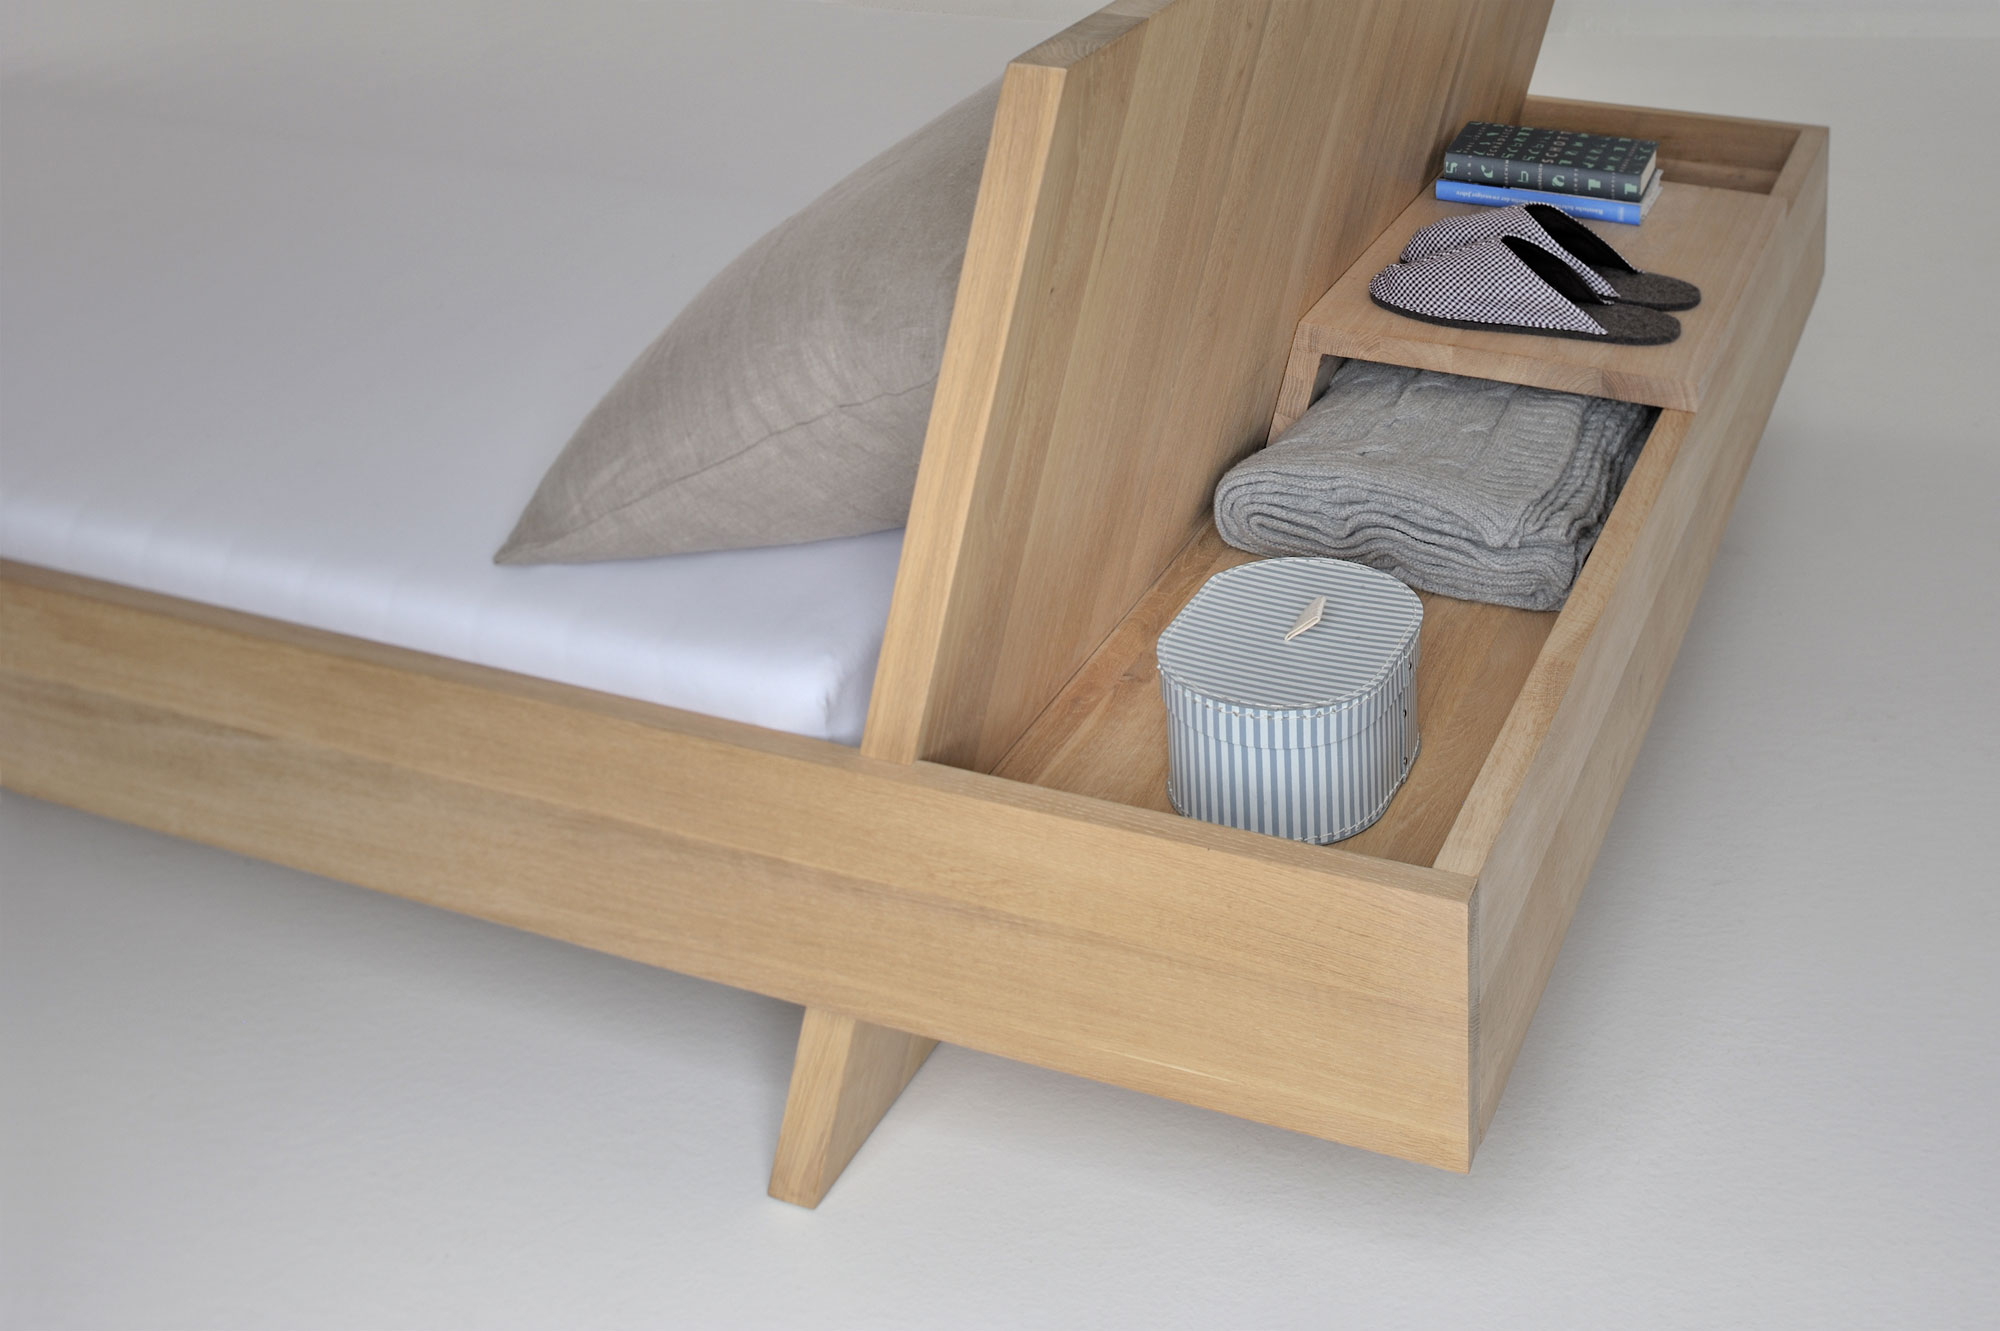 Design Solid Wood Bed SOMNIA 3057 custom made in solid wood by vitamin design